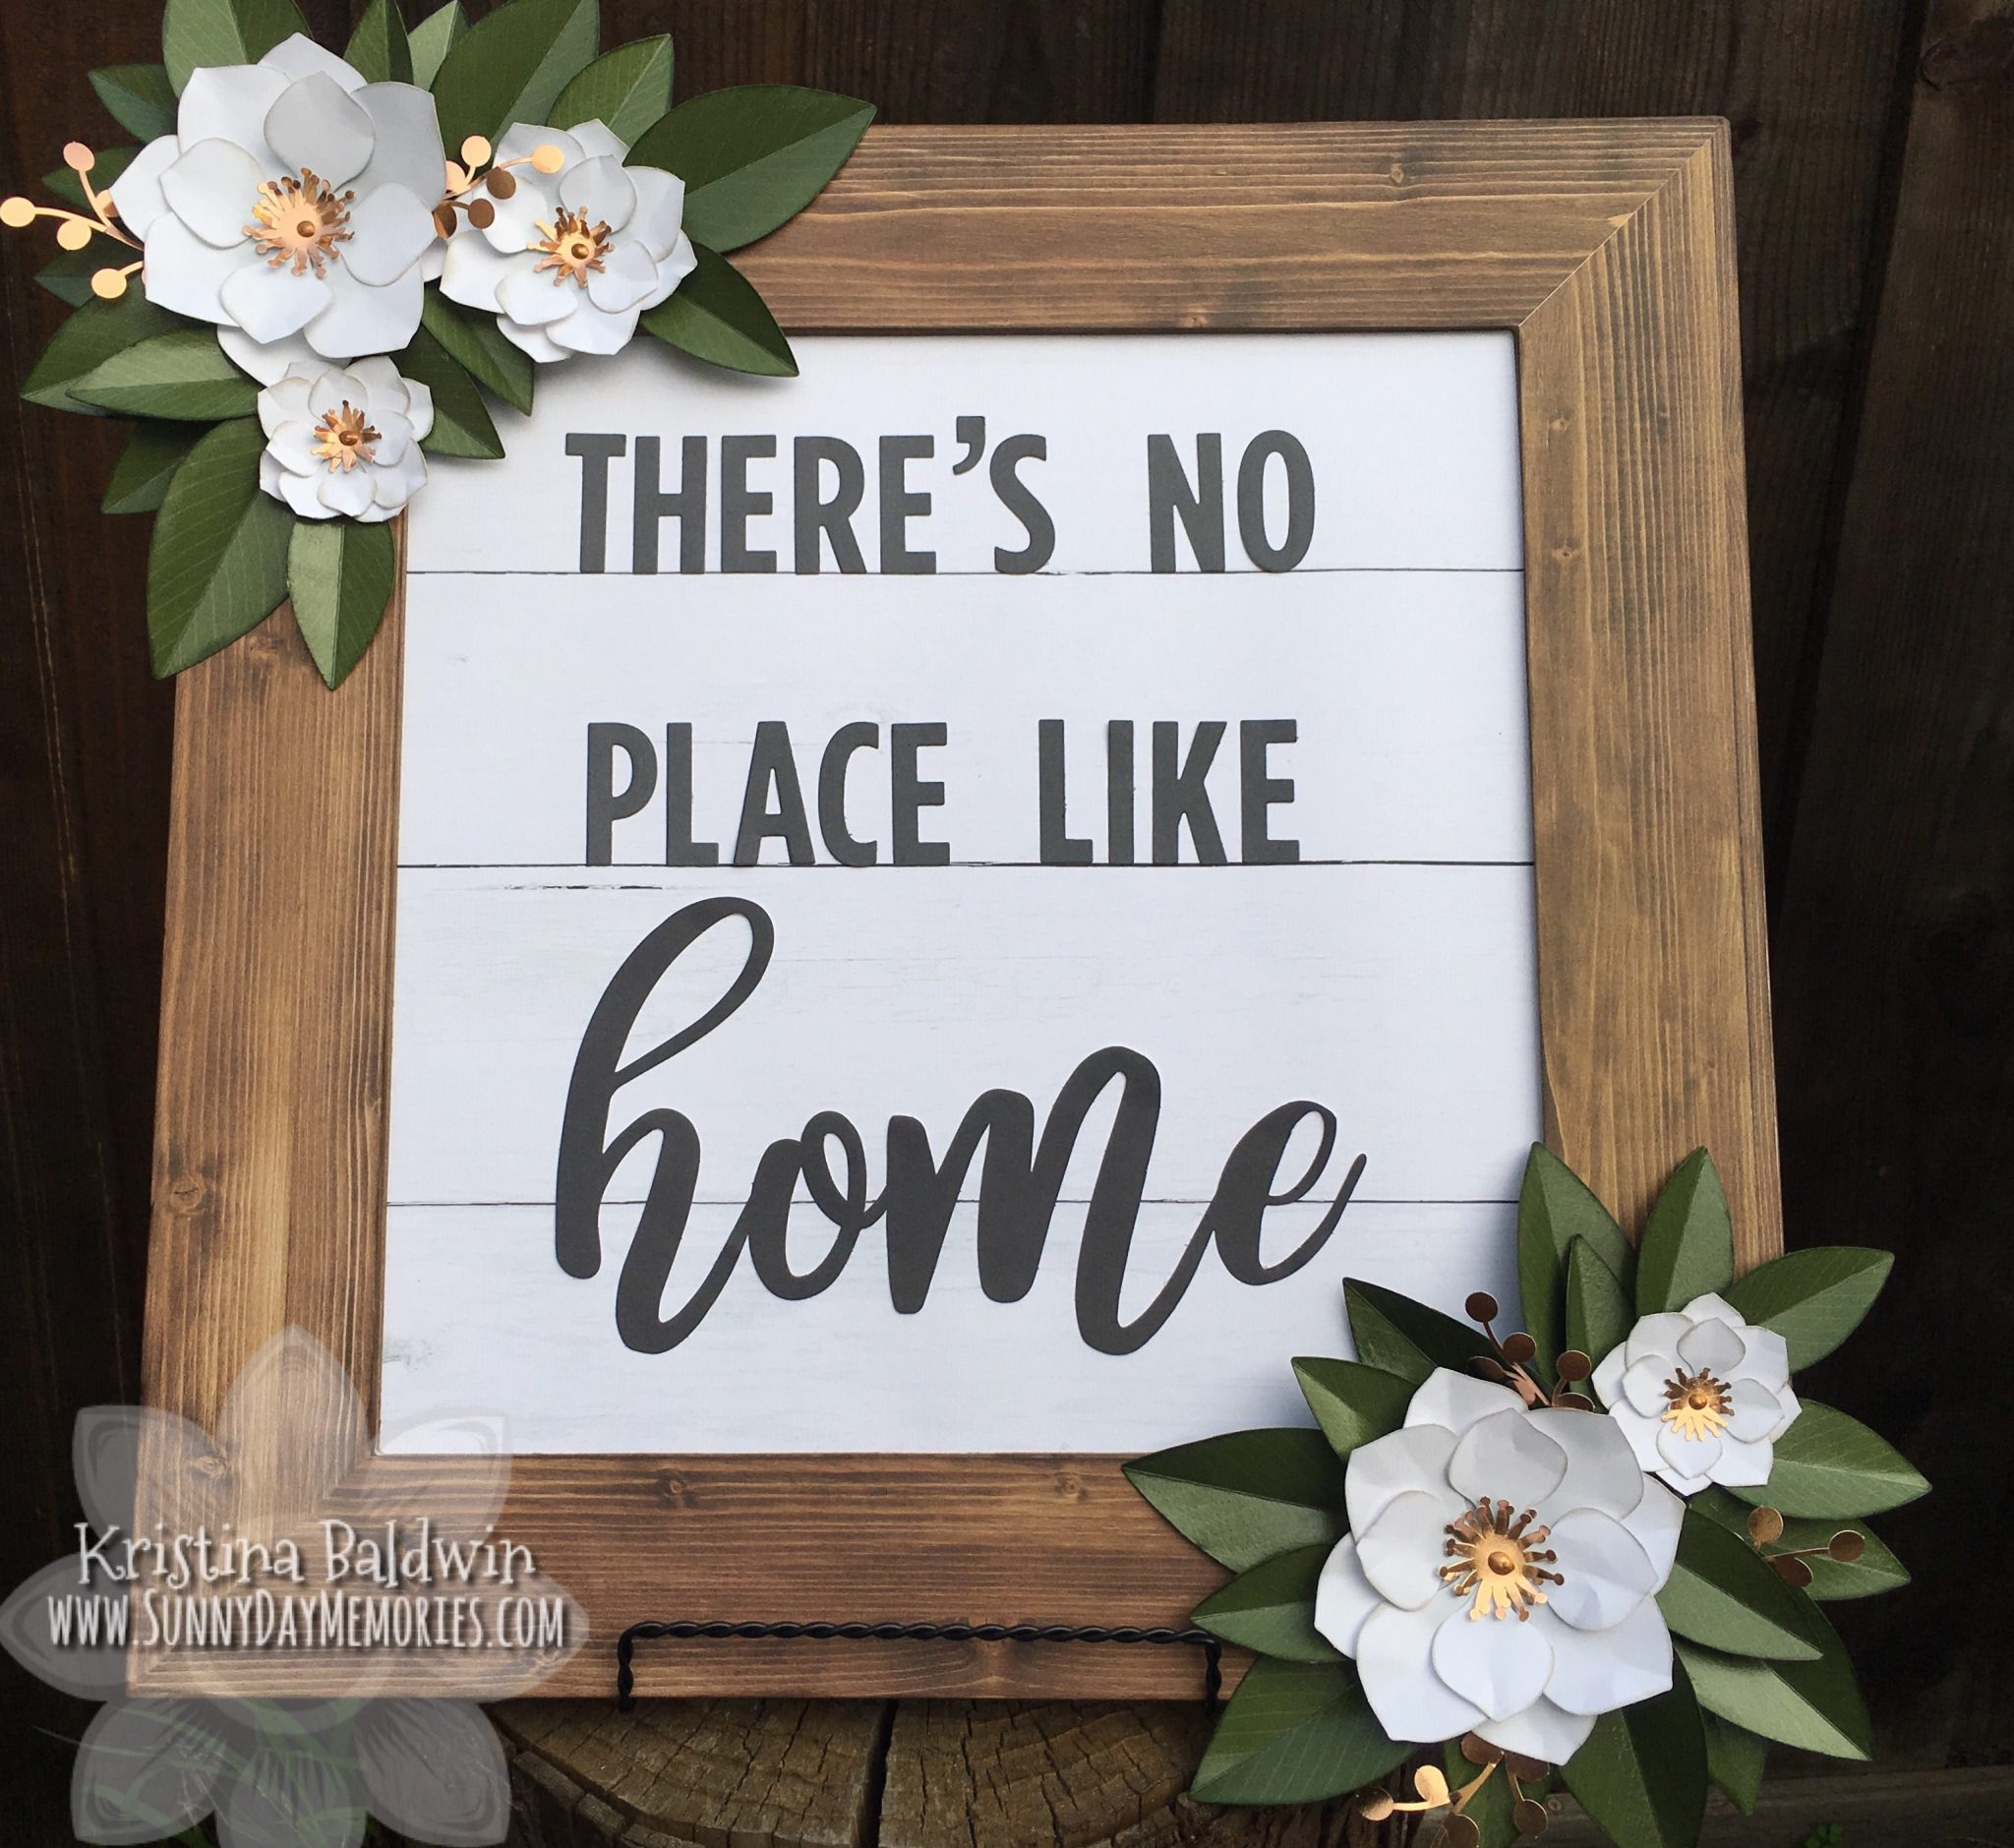 There's No Place Like Home Magnolia Frame